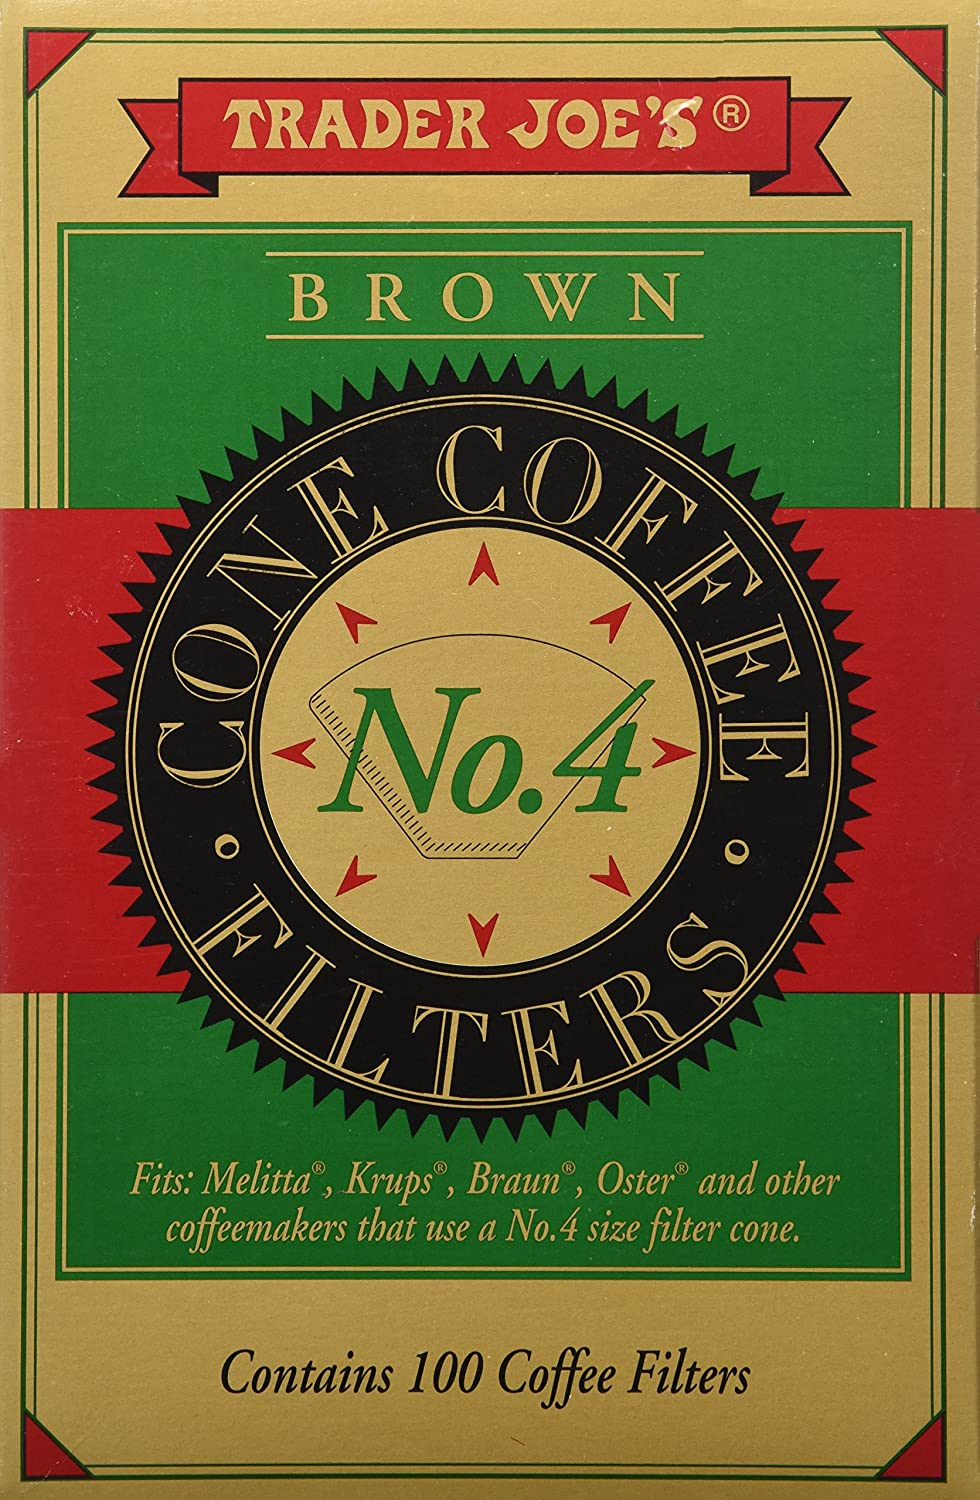 Trader Joe's Brown Cone Coffee Cheap bargain We OFFer at cheap prices 100 Filters